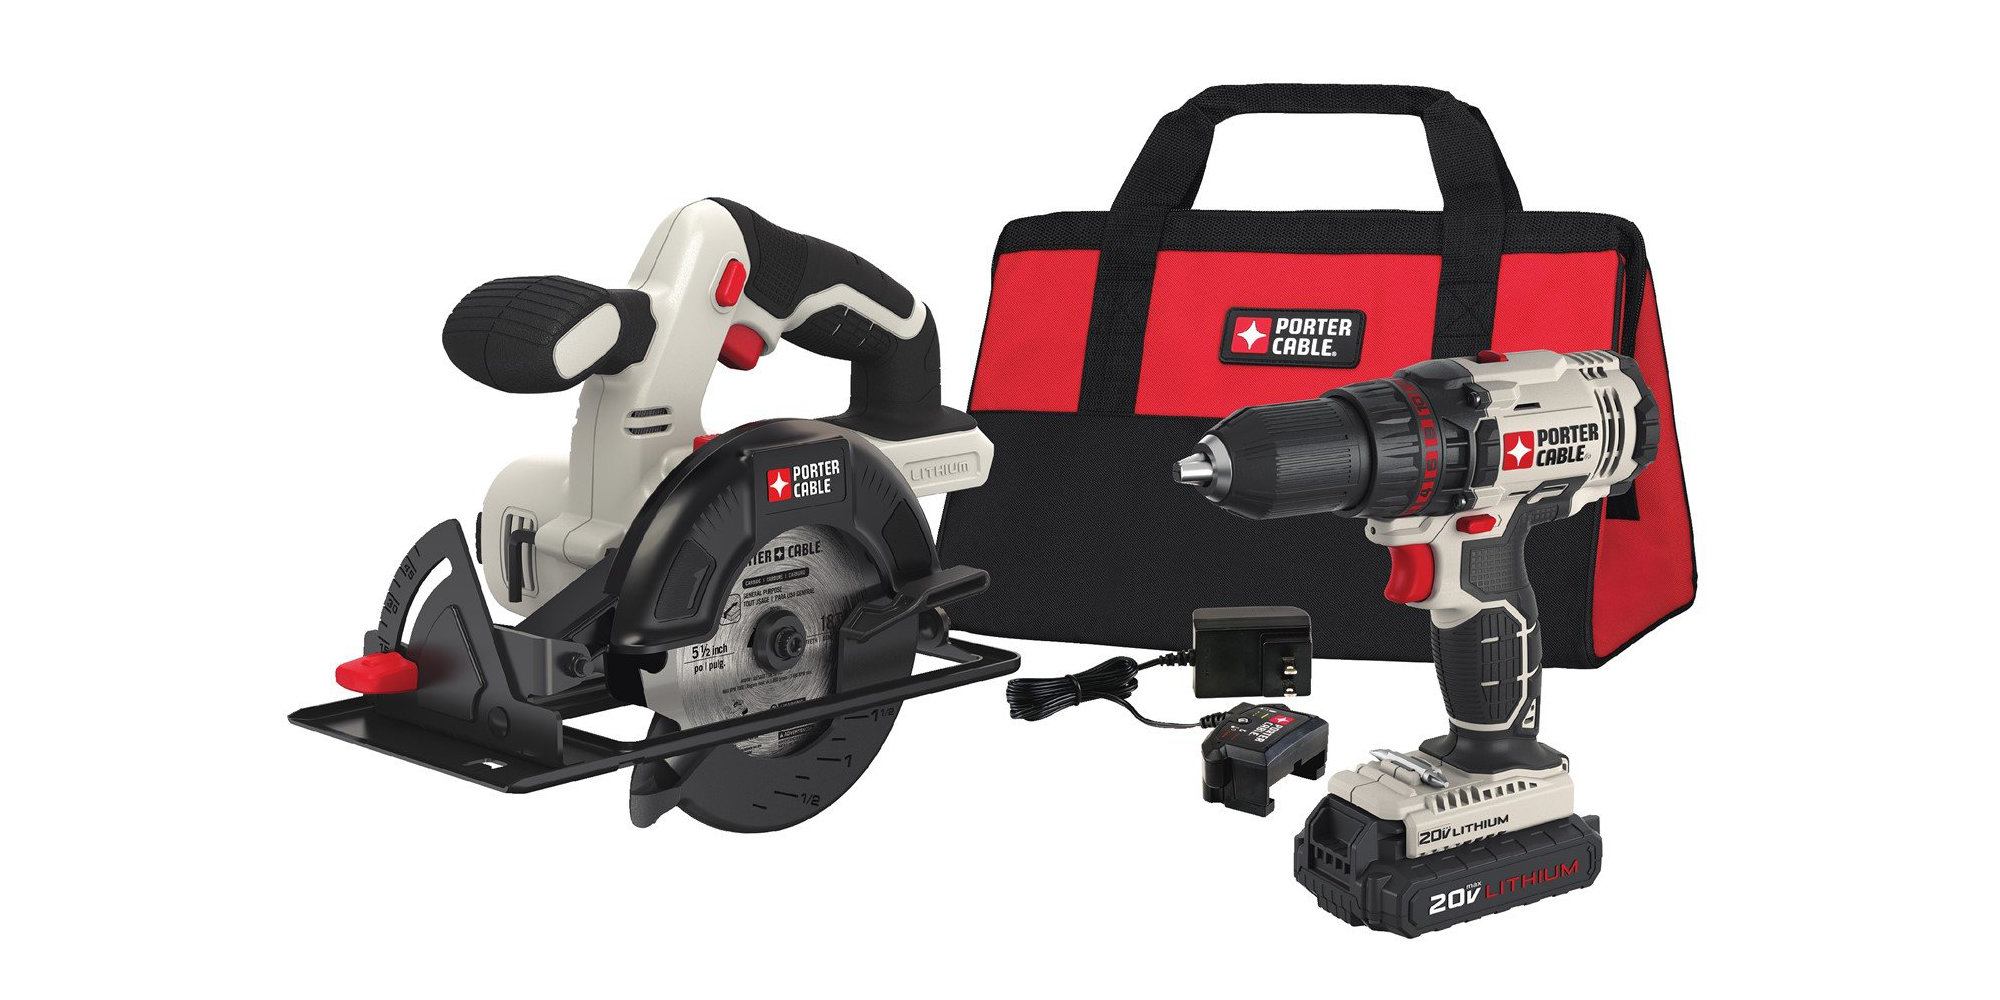 This Porter Cable 2-Tool Combo Kit includes a drill/driver, circular saw, more: $97 (Save $30+)